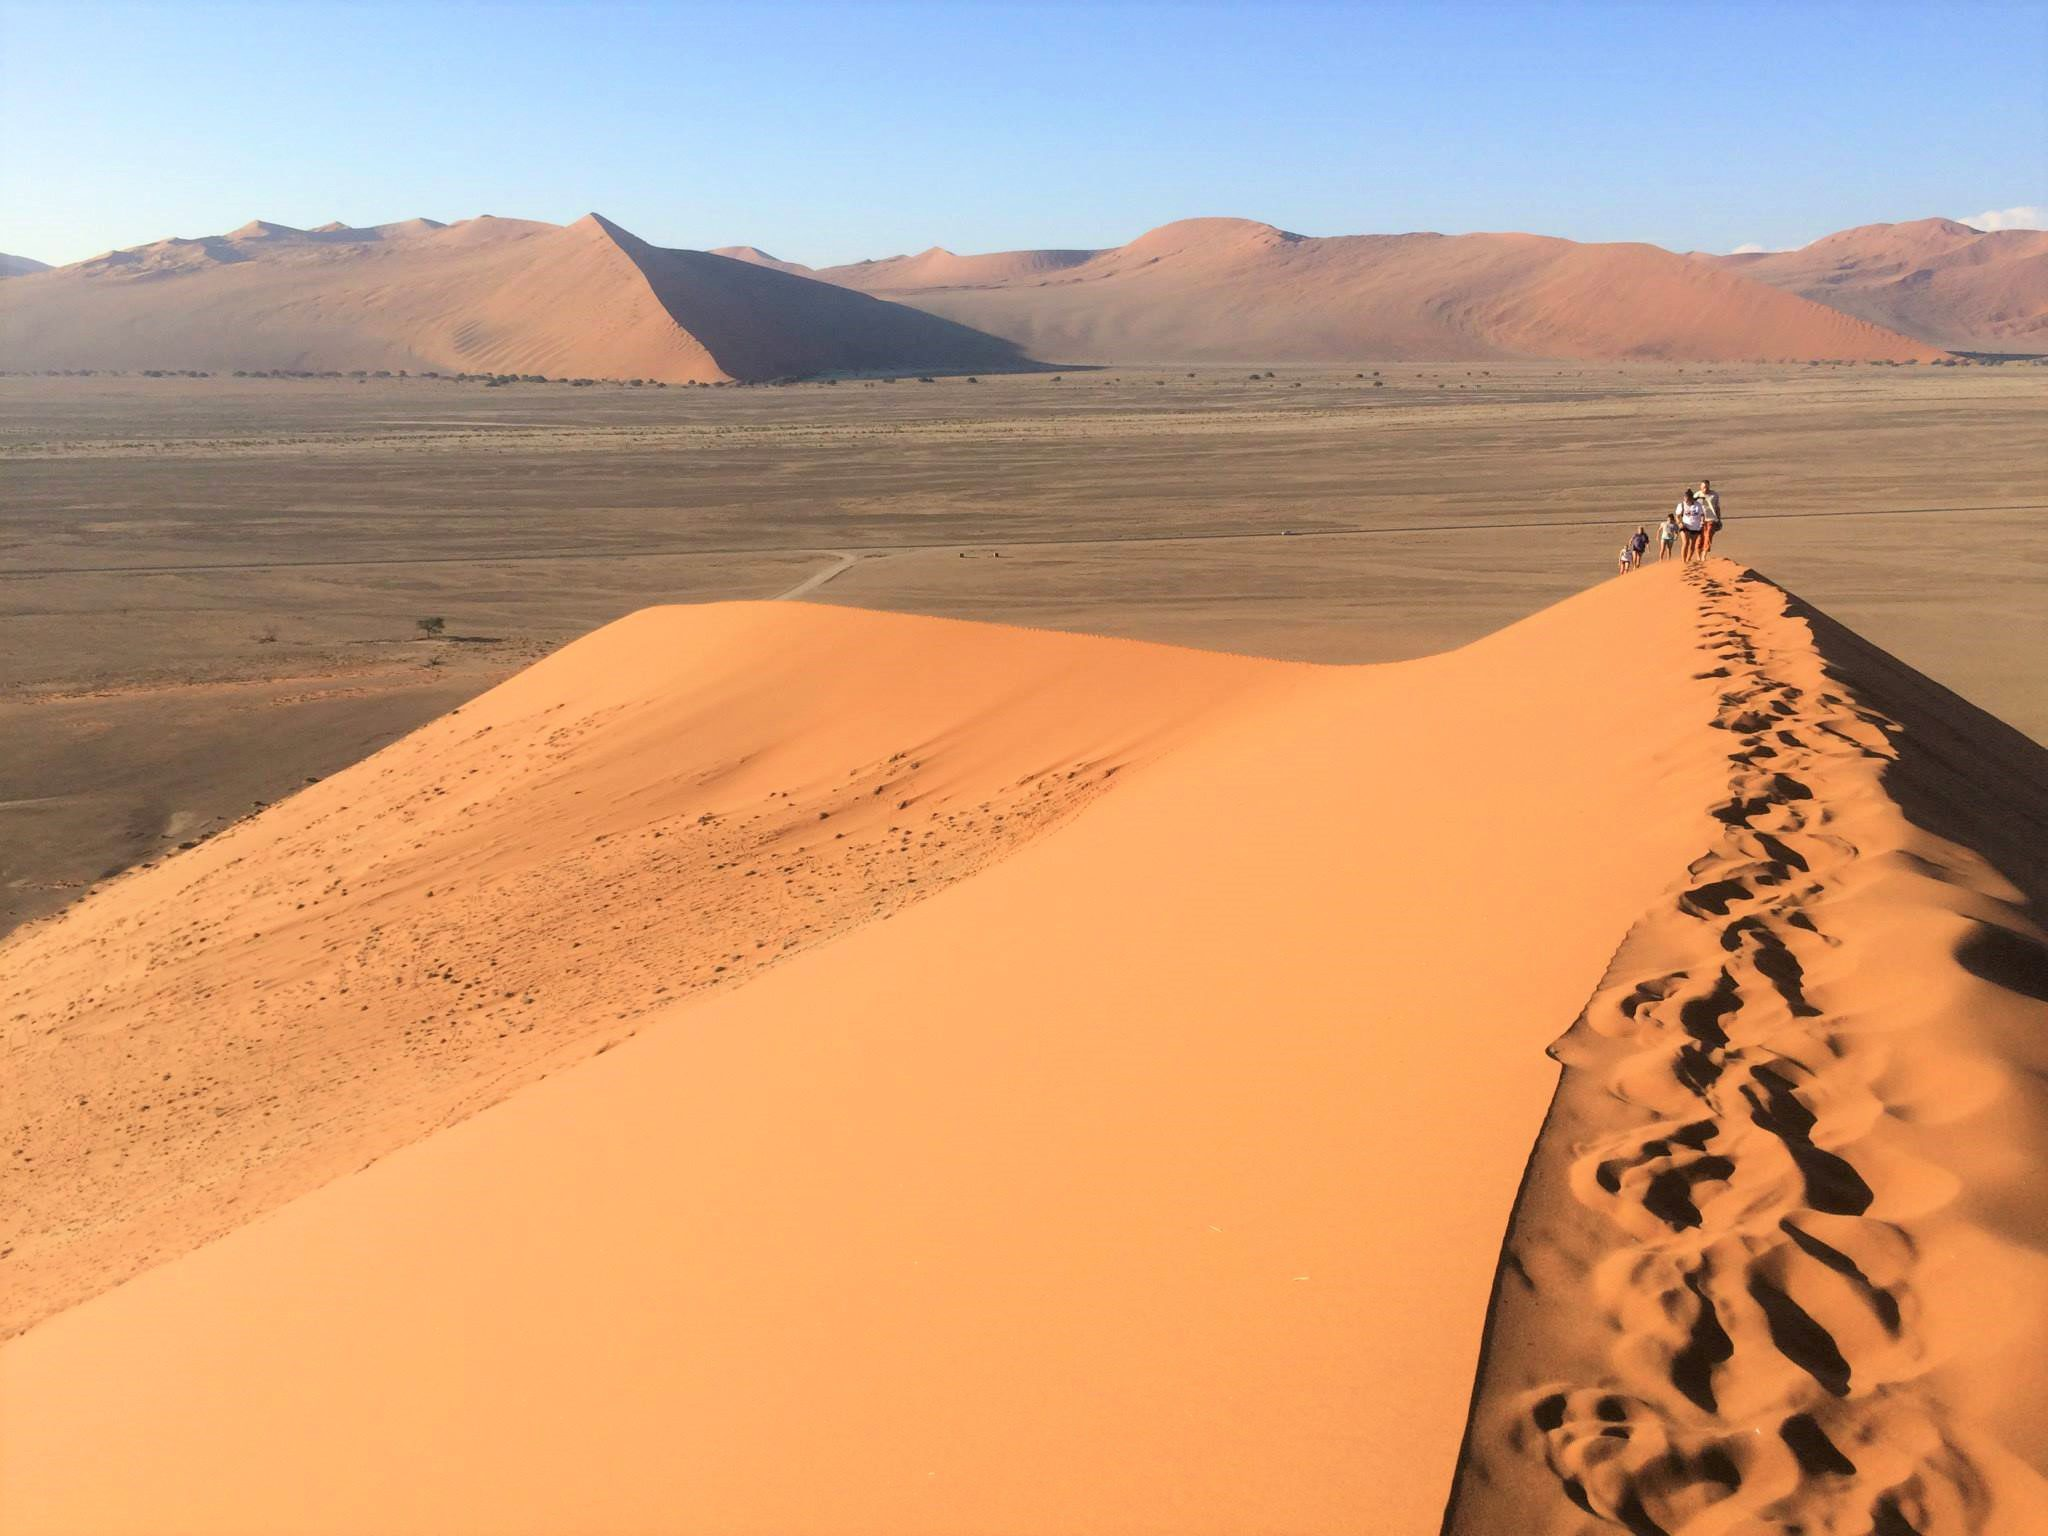 on top of Dune 45 with footprints in the foreground and people walking up in the baackground on our Namibia safari